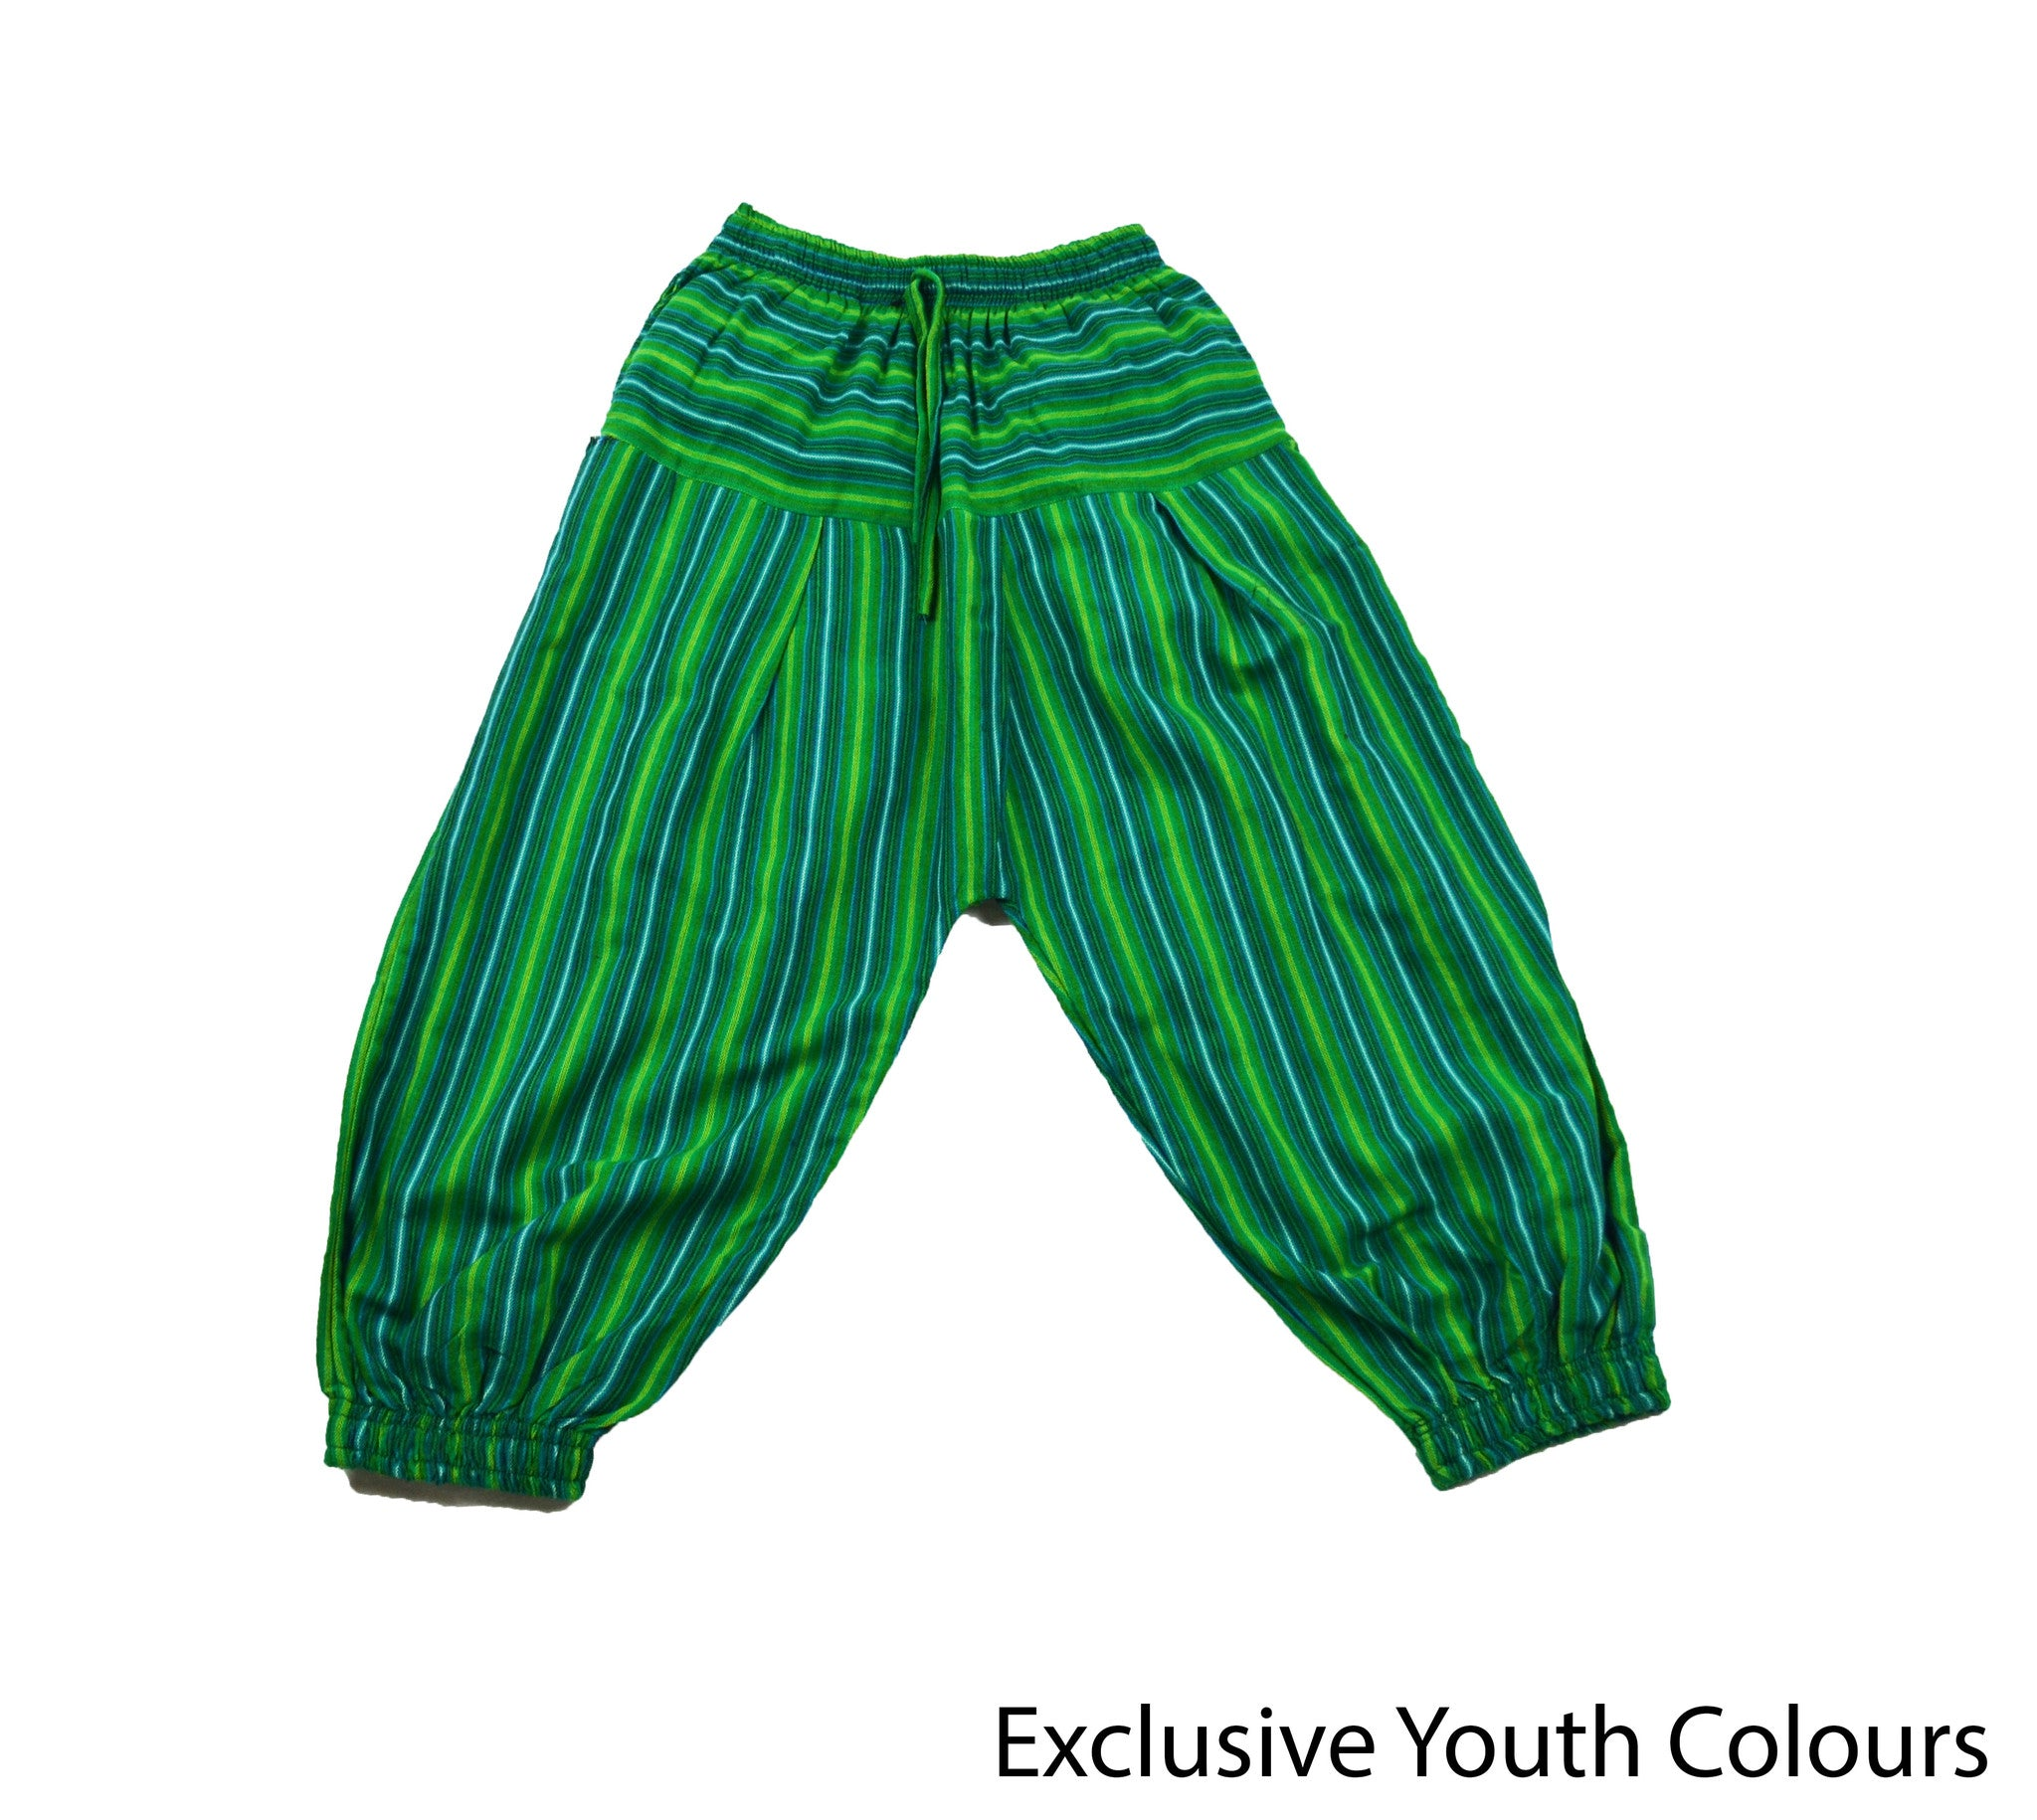 Green Bohemian Youth Pants - Happy Pants